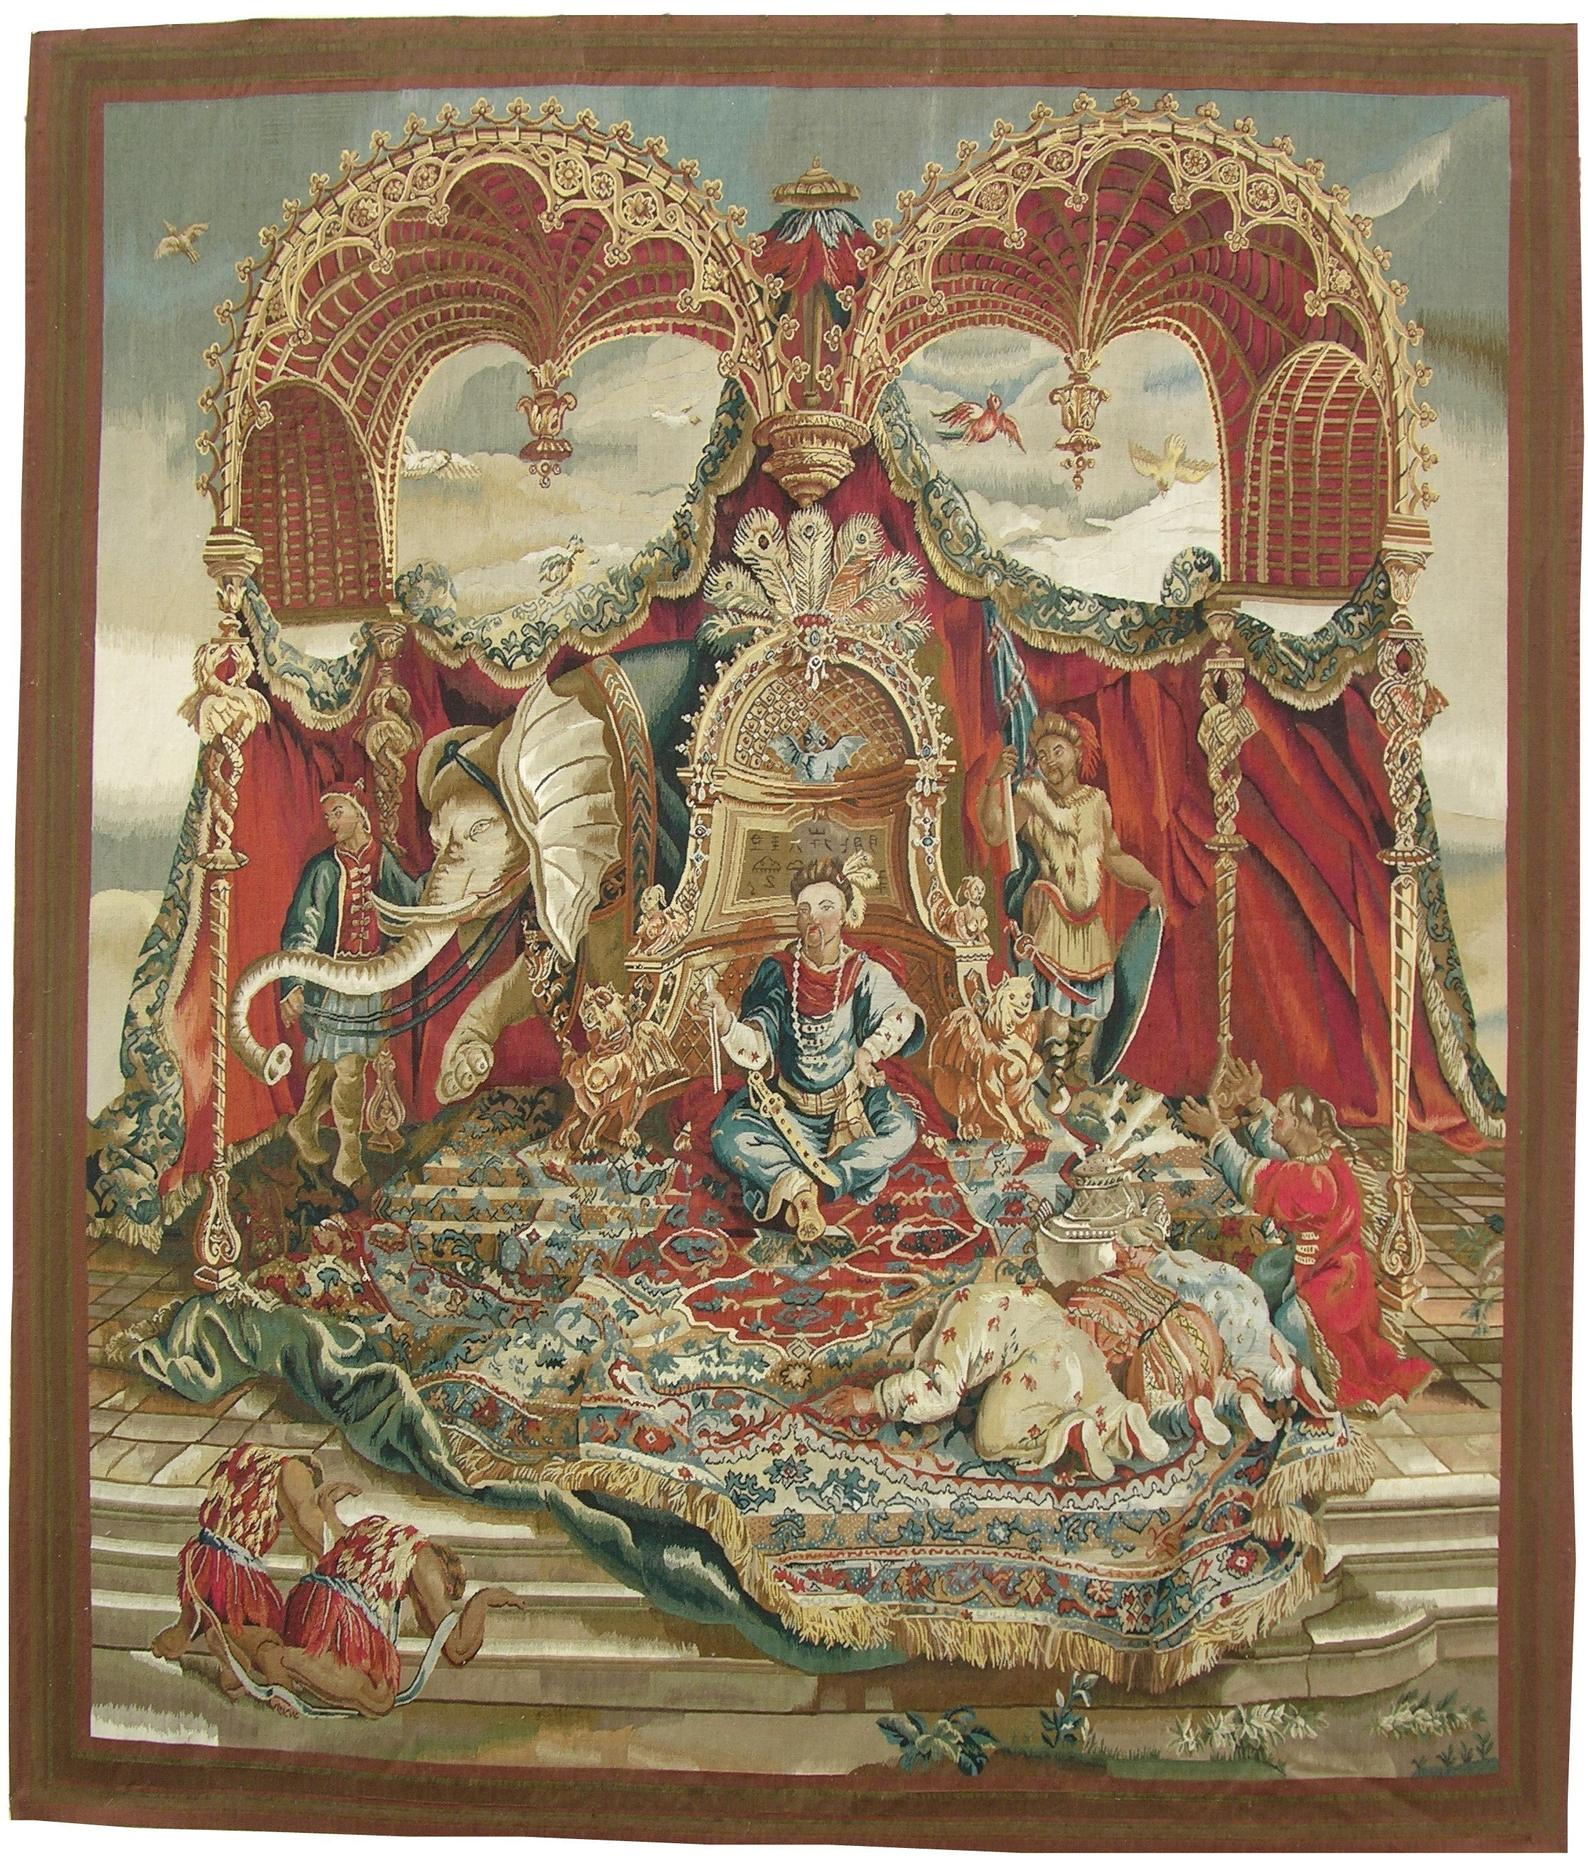 6′9″W x 7′9″H The Audience of the Emperor Handwoven Aubusson Tapestry 12980917 (1)